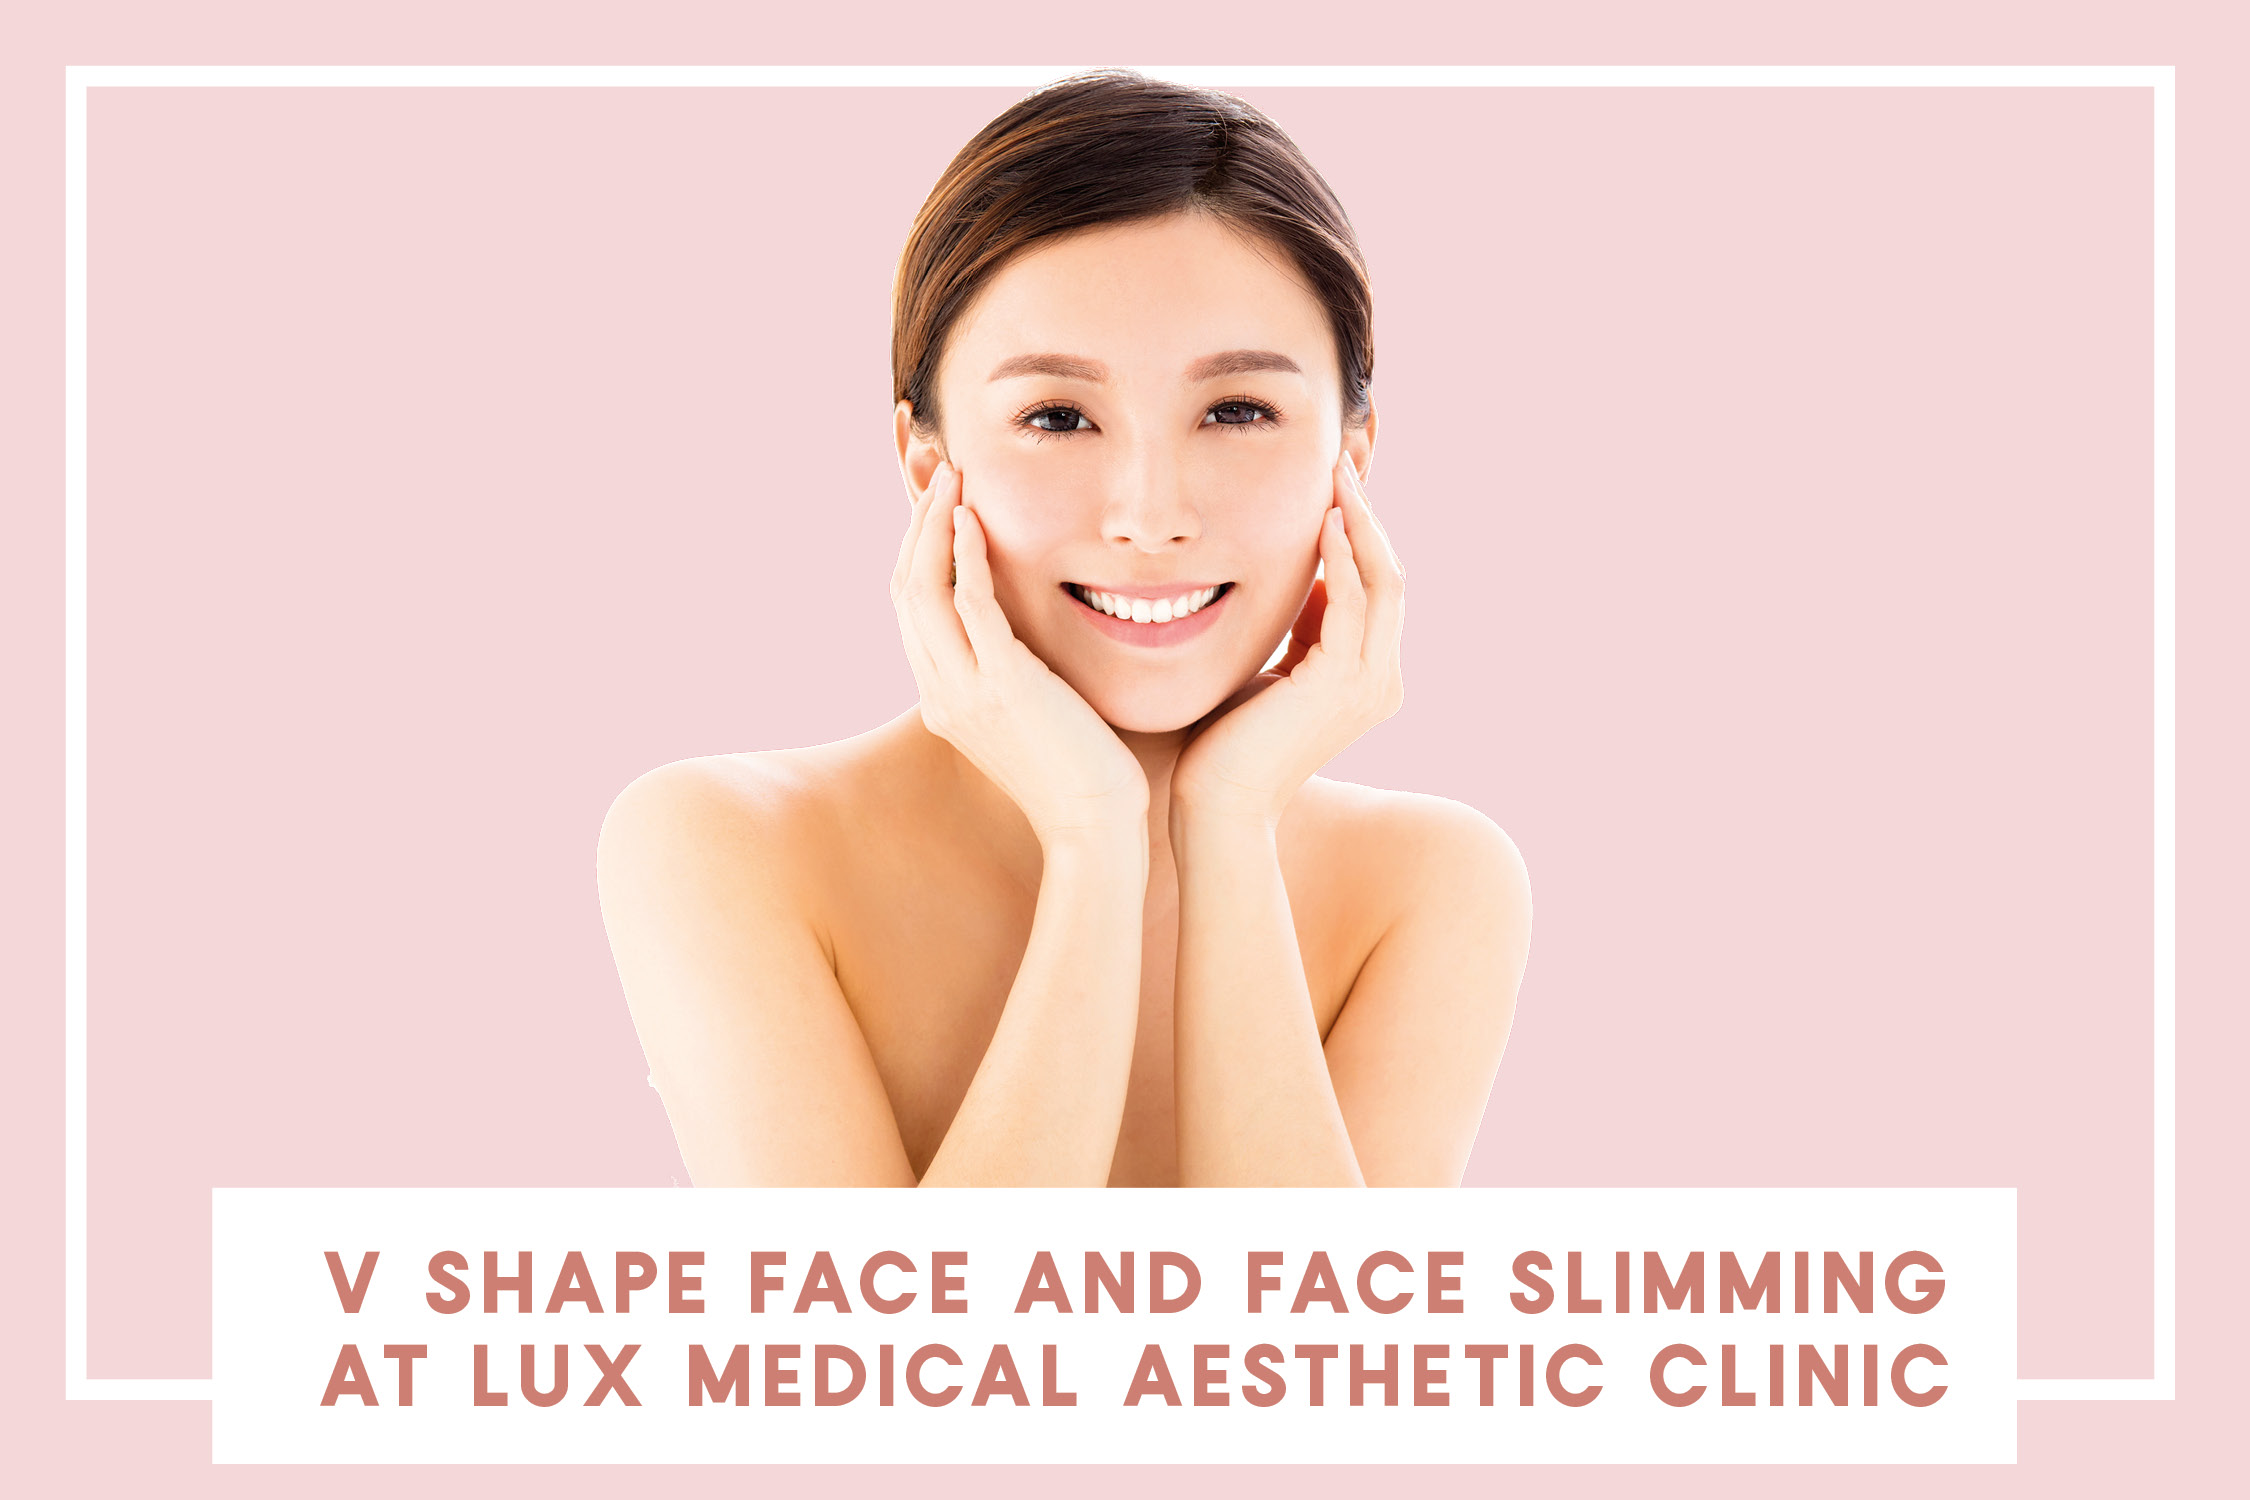 V Shape Face and Face Slimming at Lux Medical Aesthetic Clinic